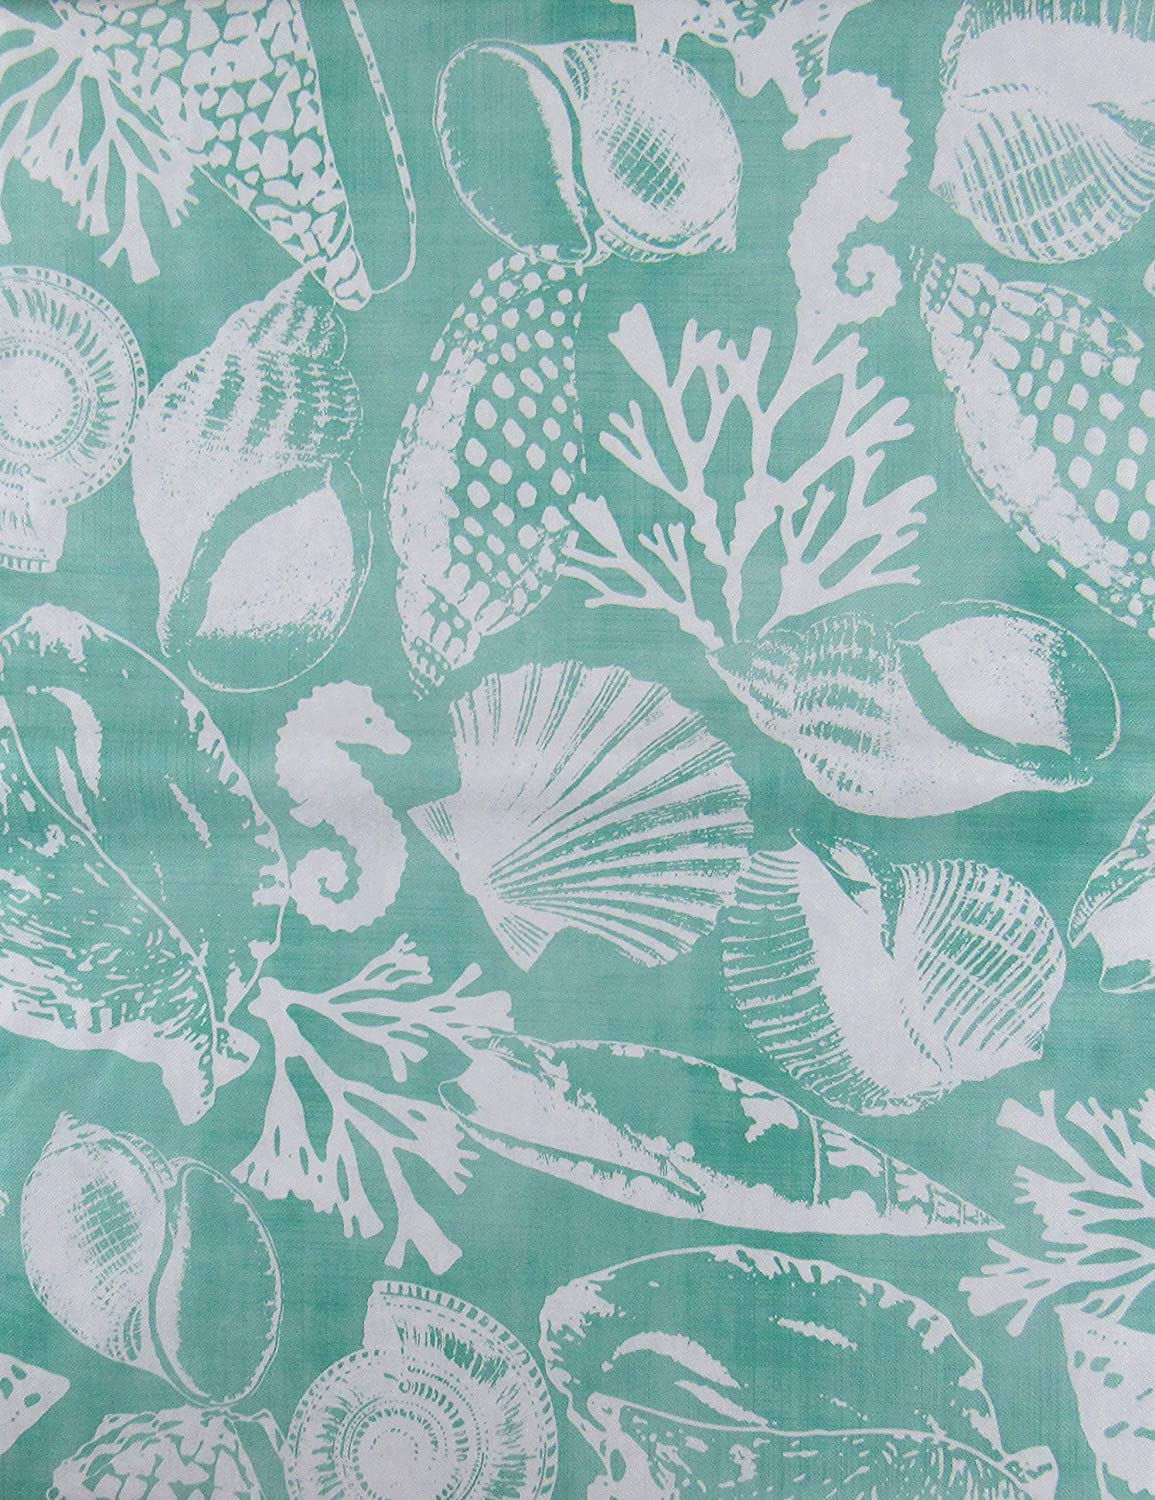 52 x 70 Oblong Seashells White on Turquoise Vinyl Flannel Back Tablecloth Seahorses and Coral